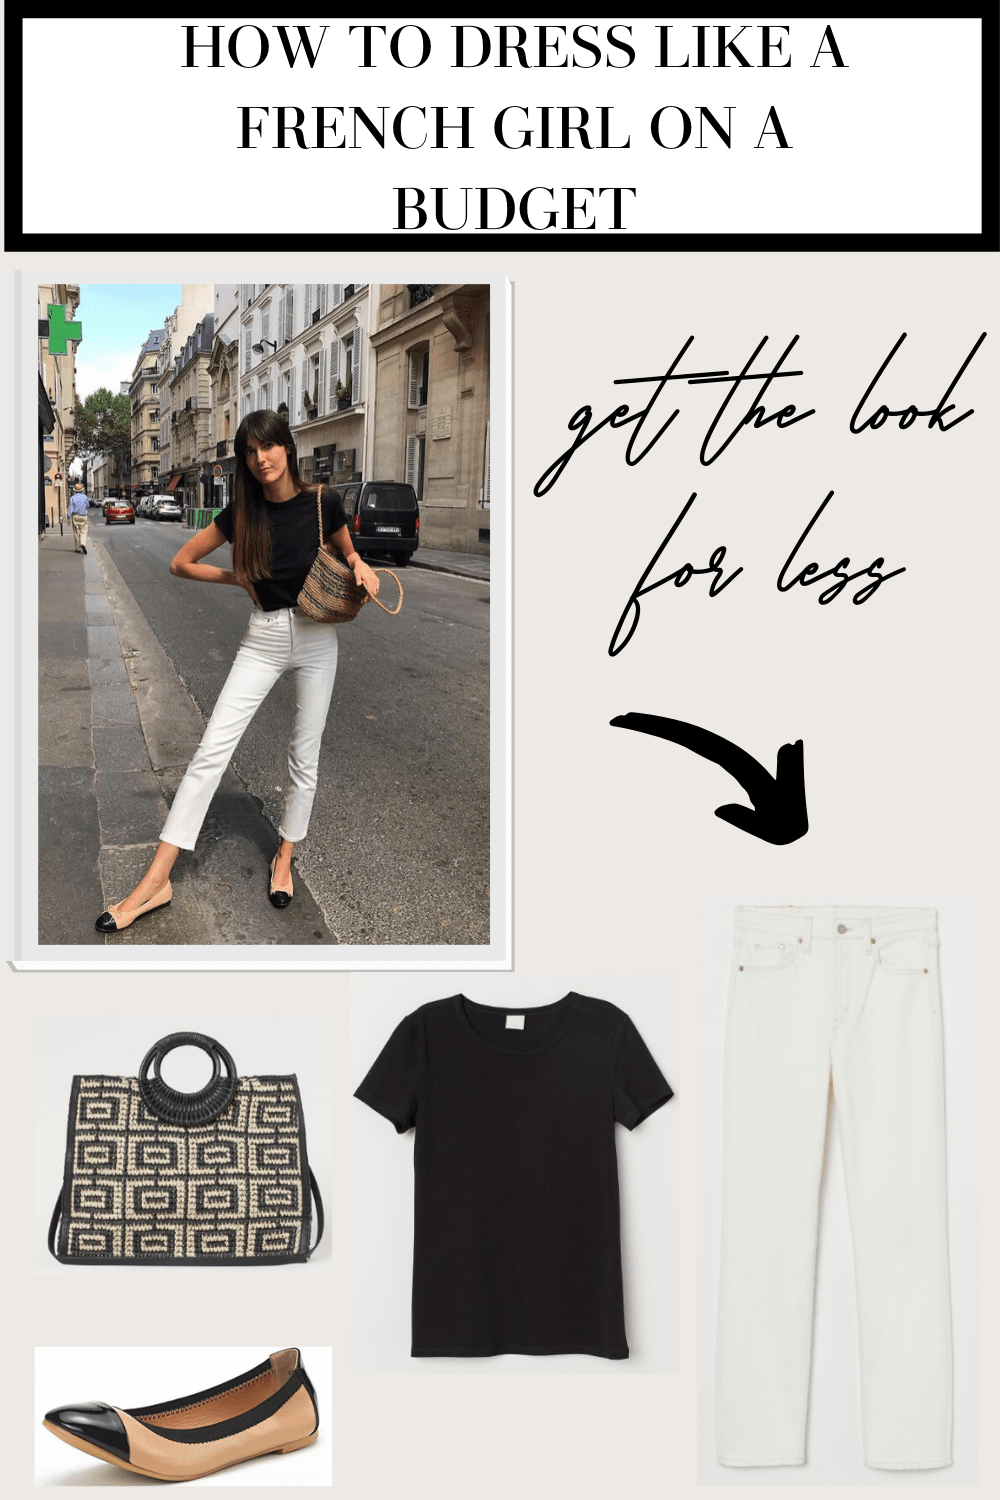 dress like a french girl on a budget